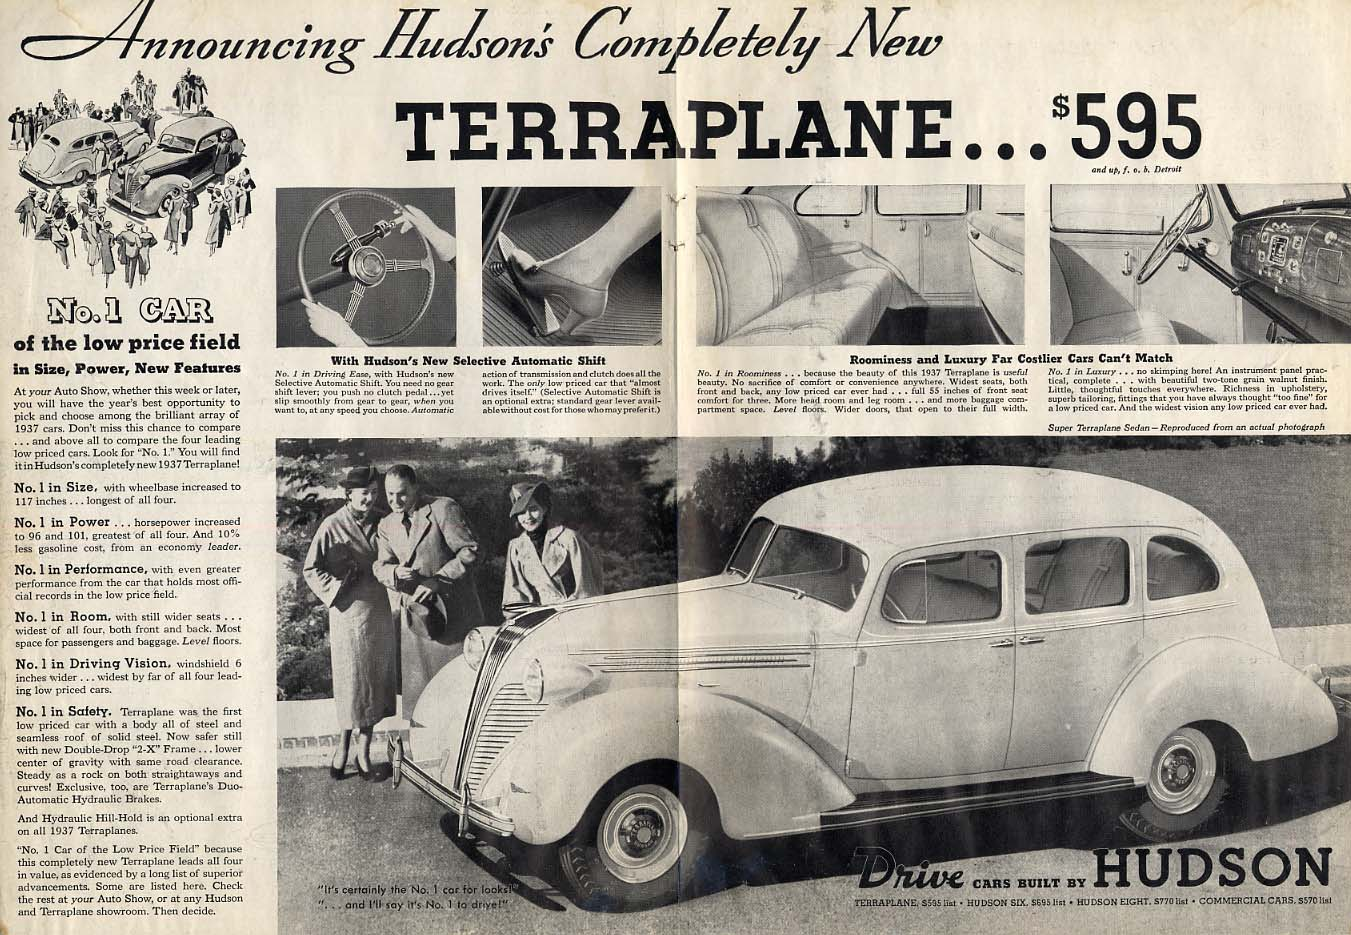 Announcing Hudson's Completely New Terraplane $595 ad 1937 LD